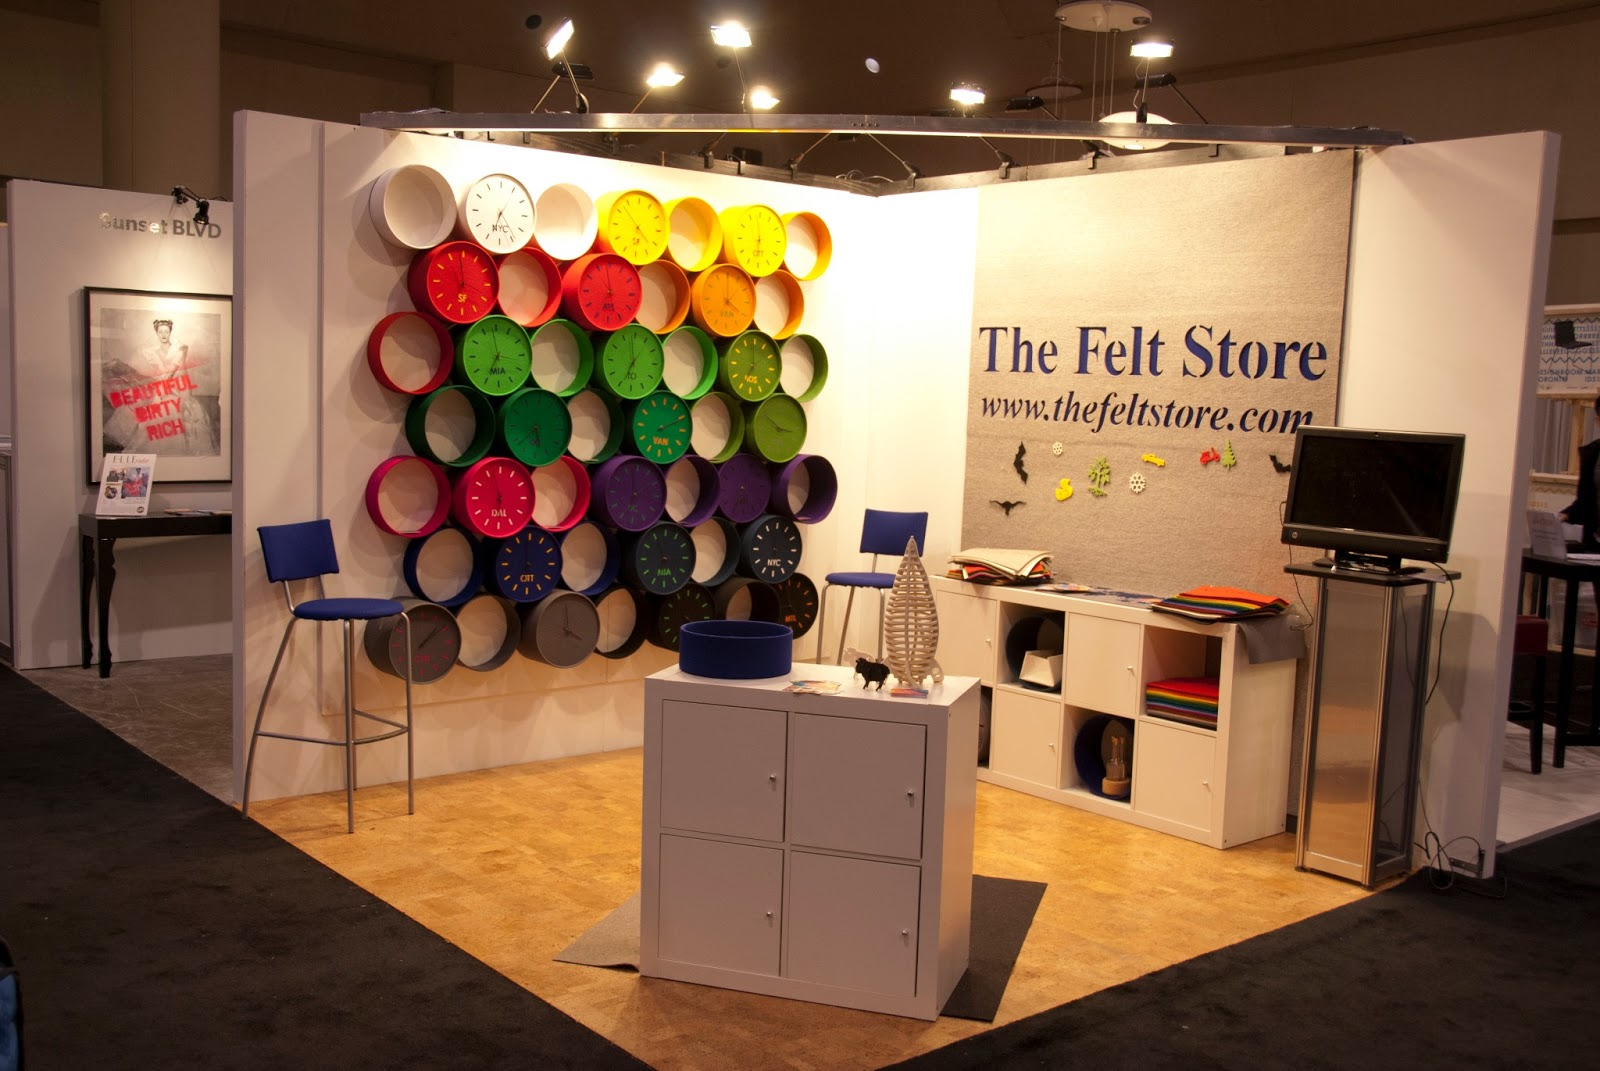 The Felt Store Toronto Interior Design Show 2013 The Aftermath